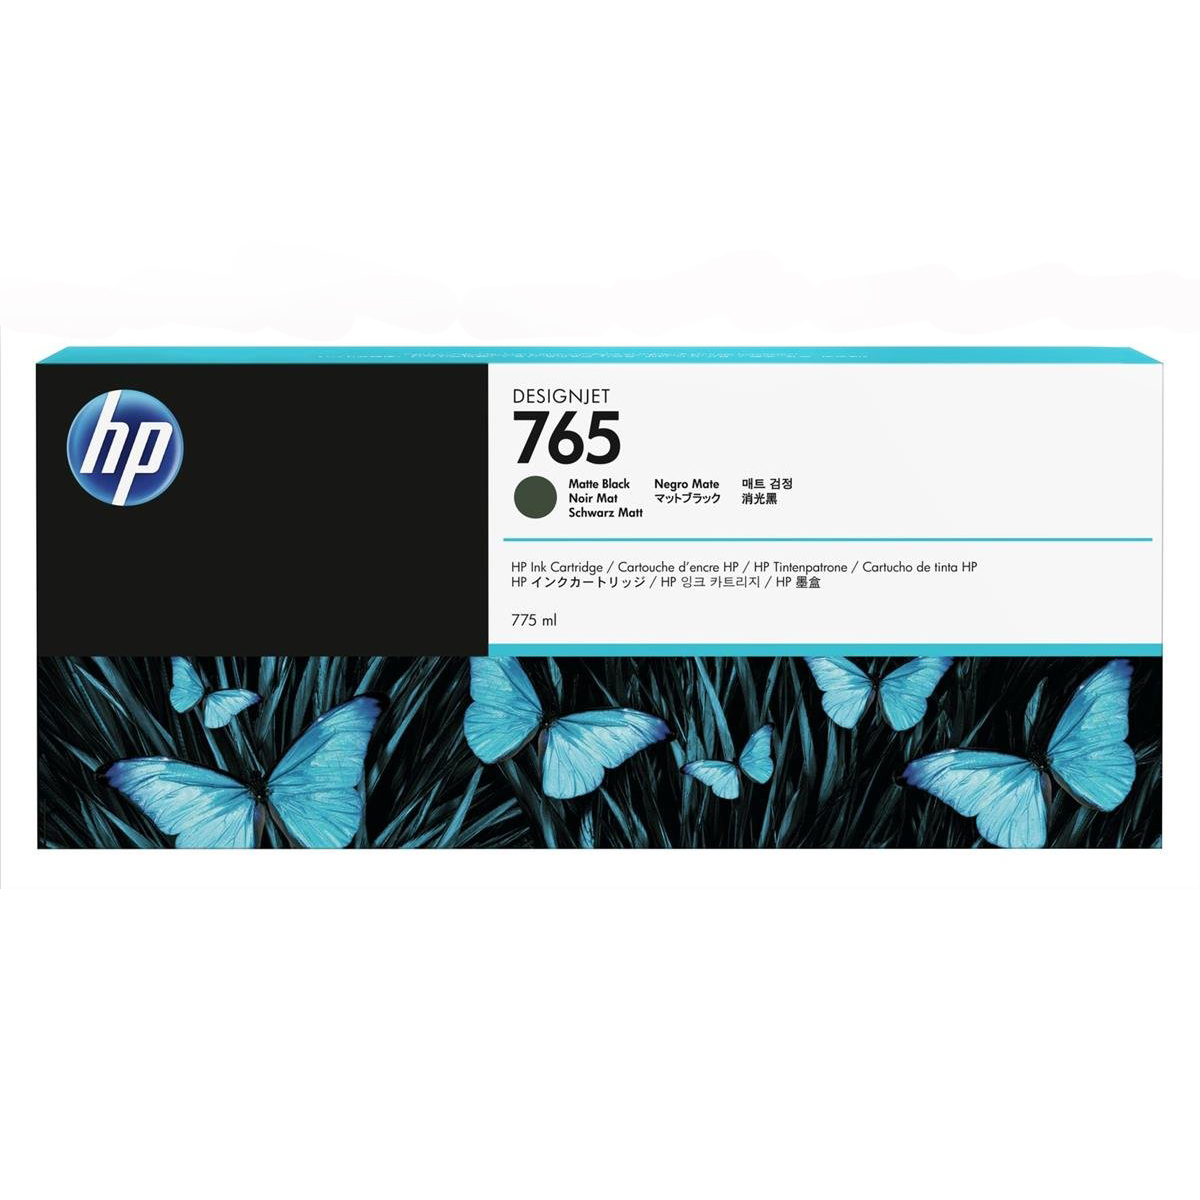 HP 765 775-ml Designjet Ink Cartridge (F9J55A) - Matte Black